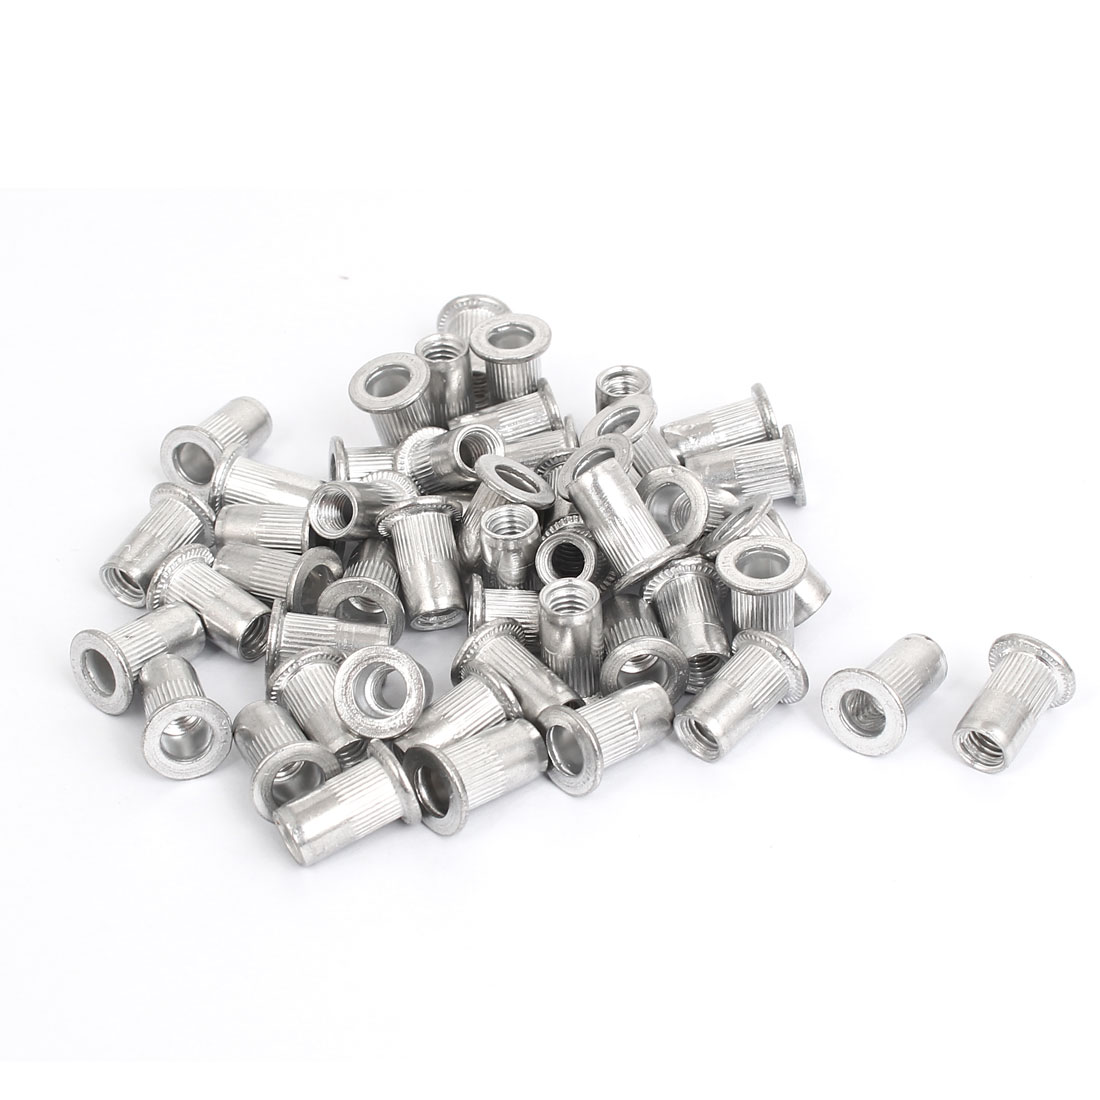 M5 Thread Aluminum Rivet Nut Insert Nutsert 50pcs